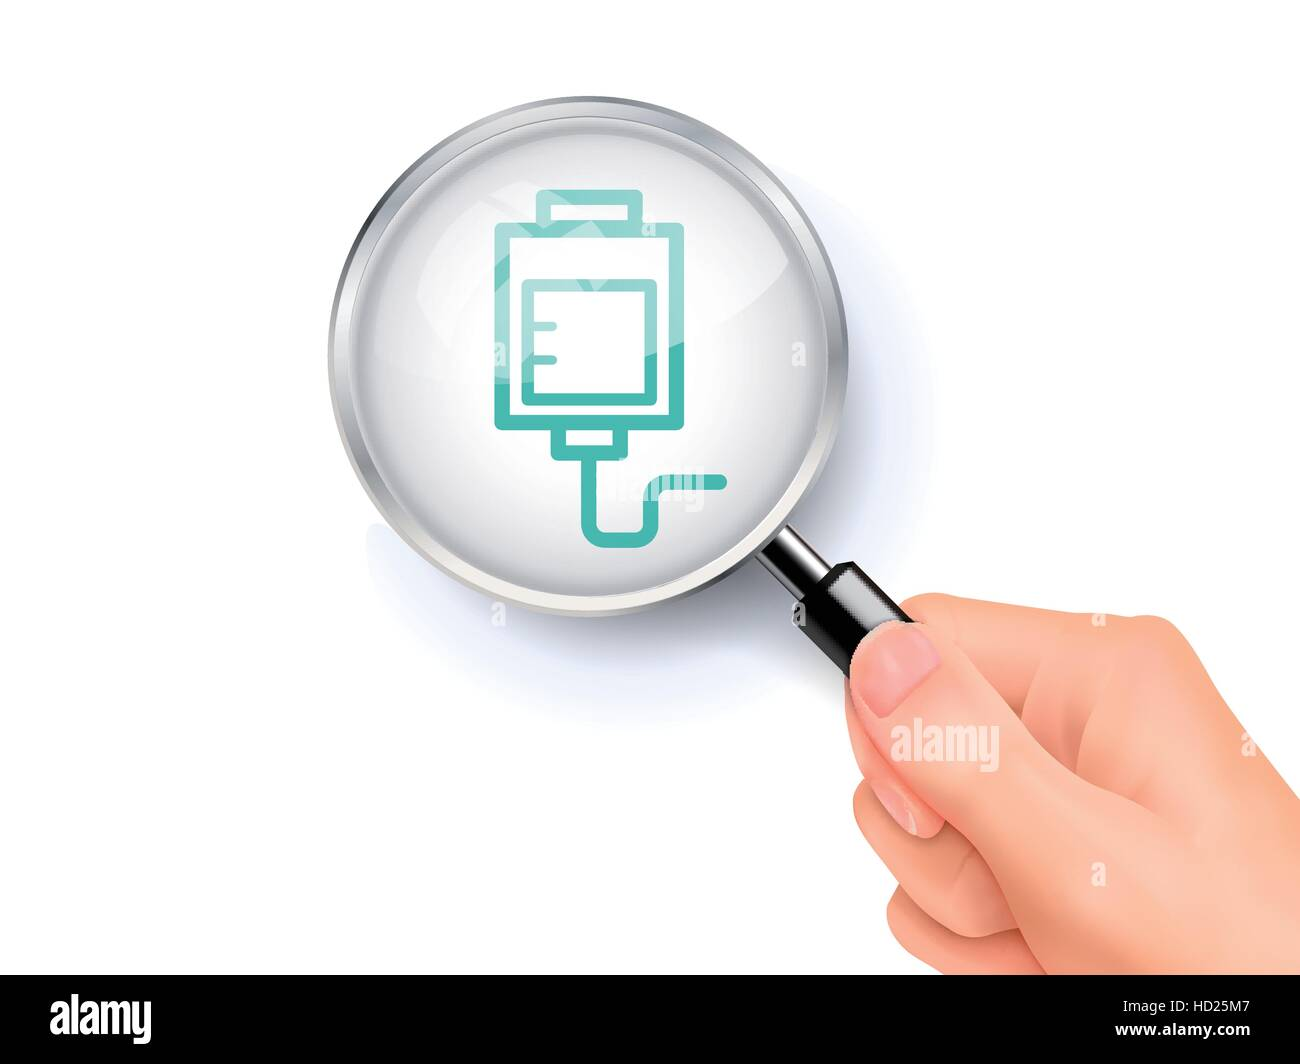 IV bag icon showing through magnifying glass held by hand - Stock Vector